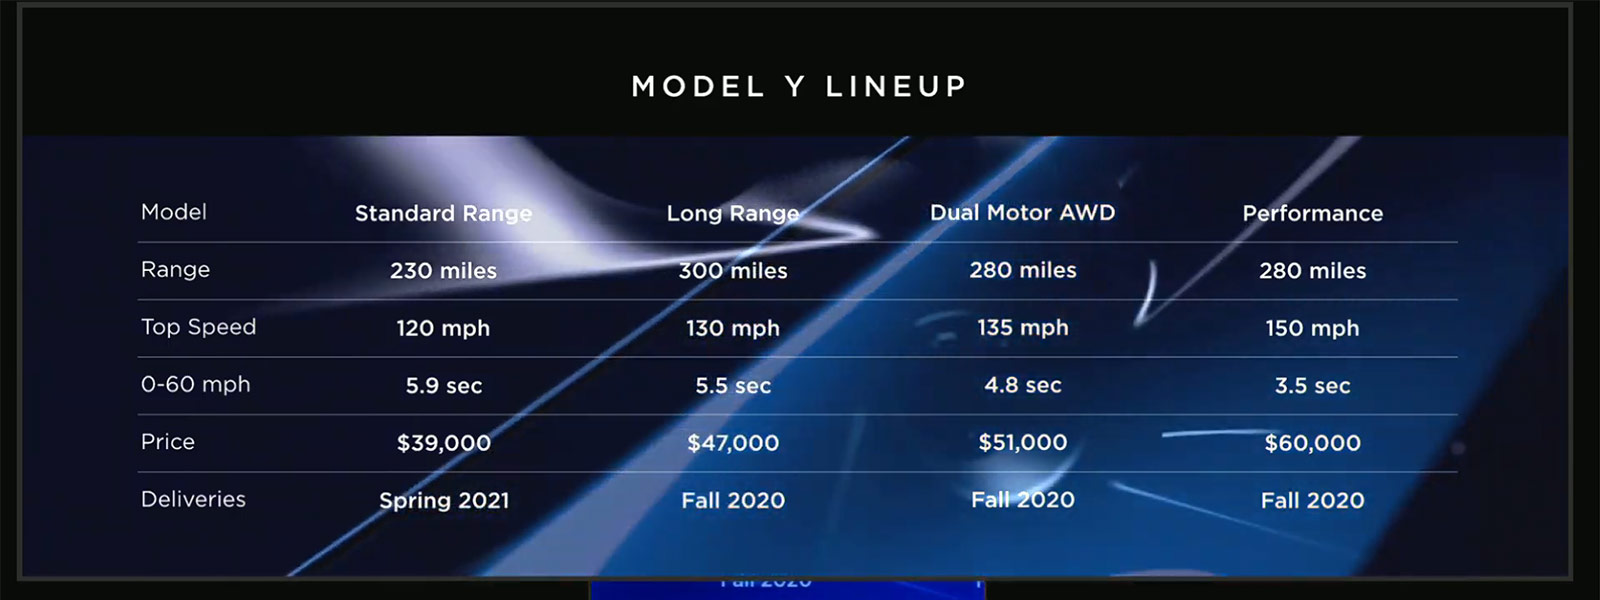 Tesla Model Y range, performance and pricing chart.